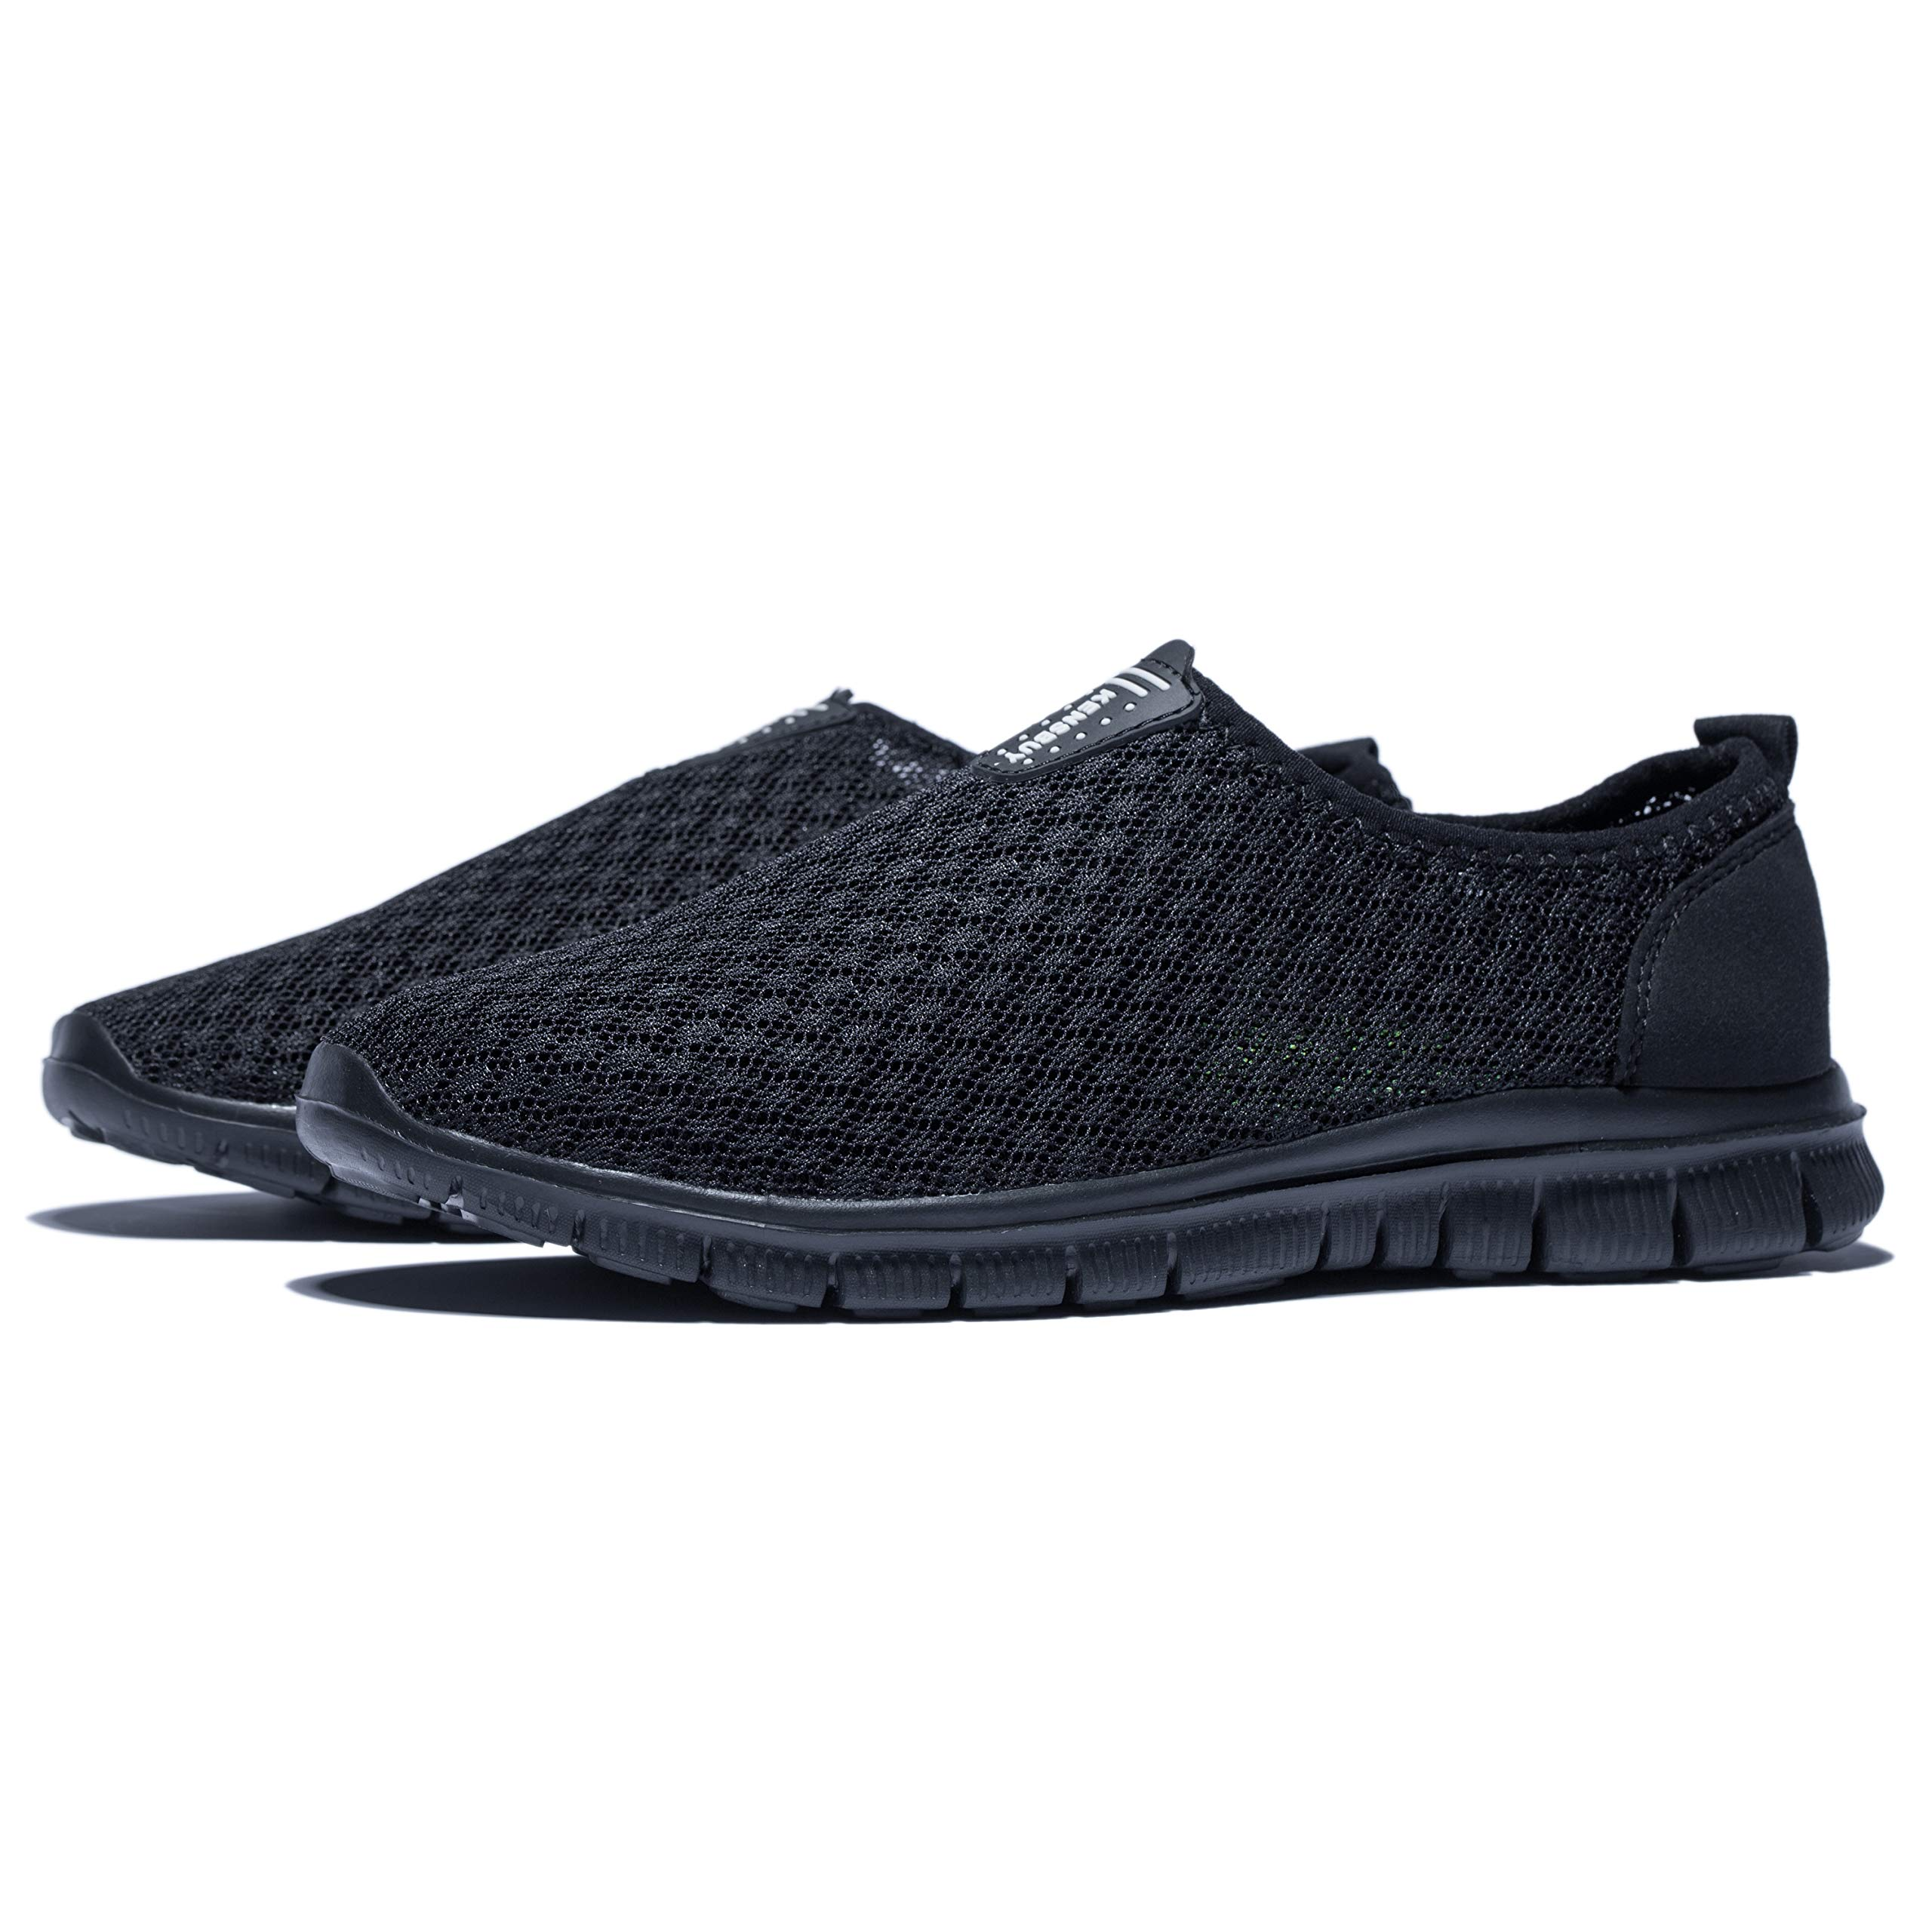 KENSBUY Mens Breathable and Durable Sports Running Shoes Lightweight Mesh Walking Sneakers (8 M US Men, Black/Black) by KENSBUY (Image #7)